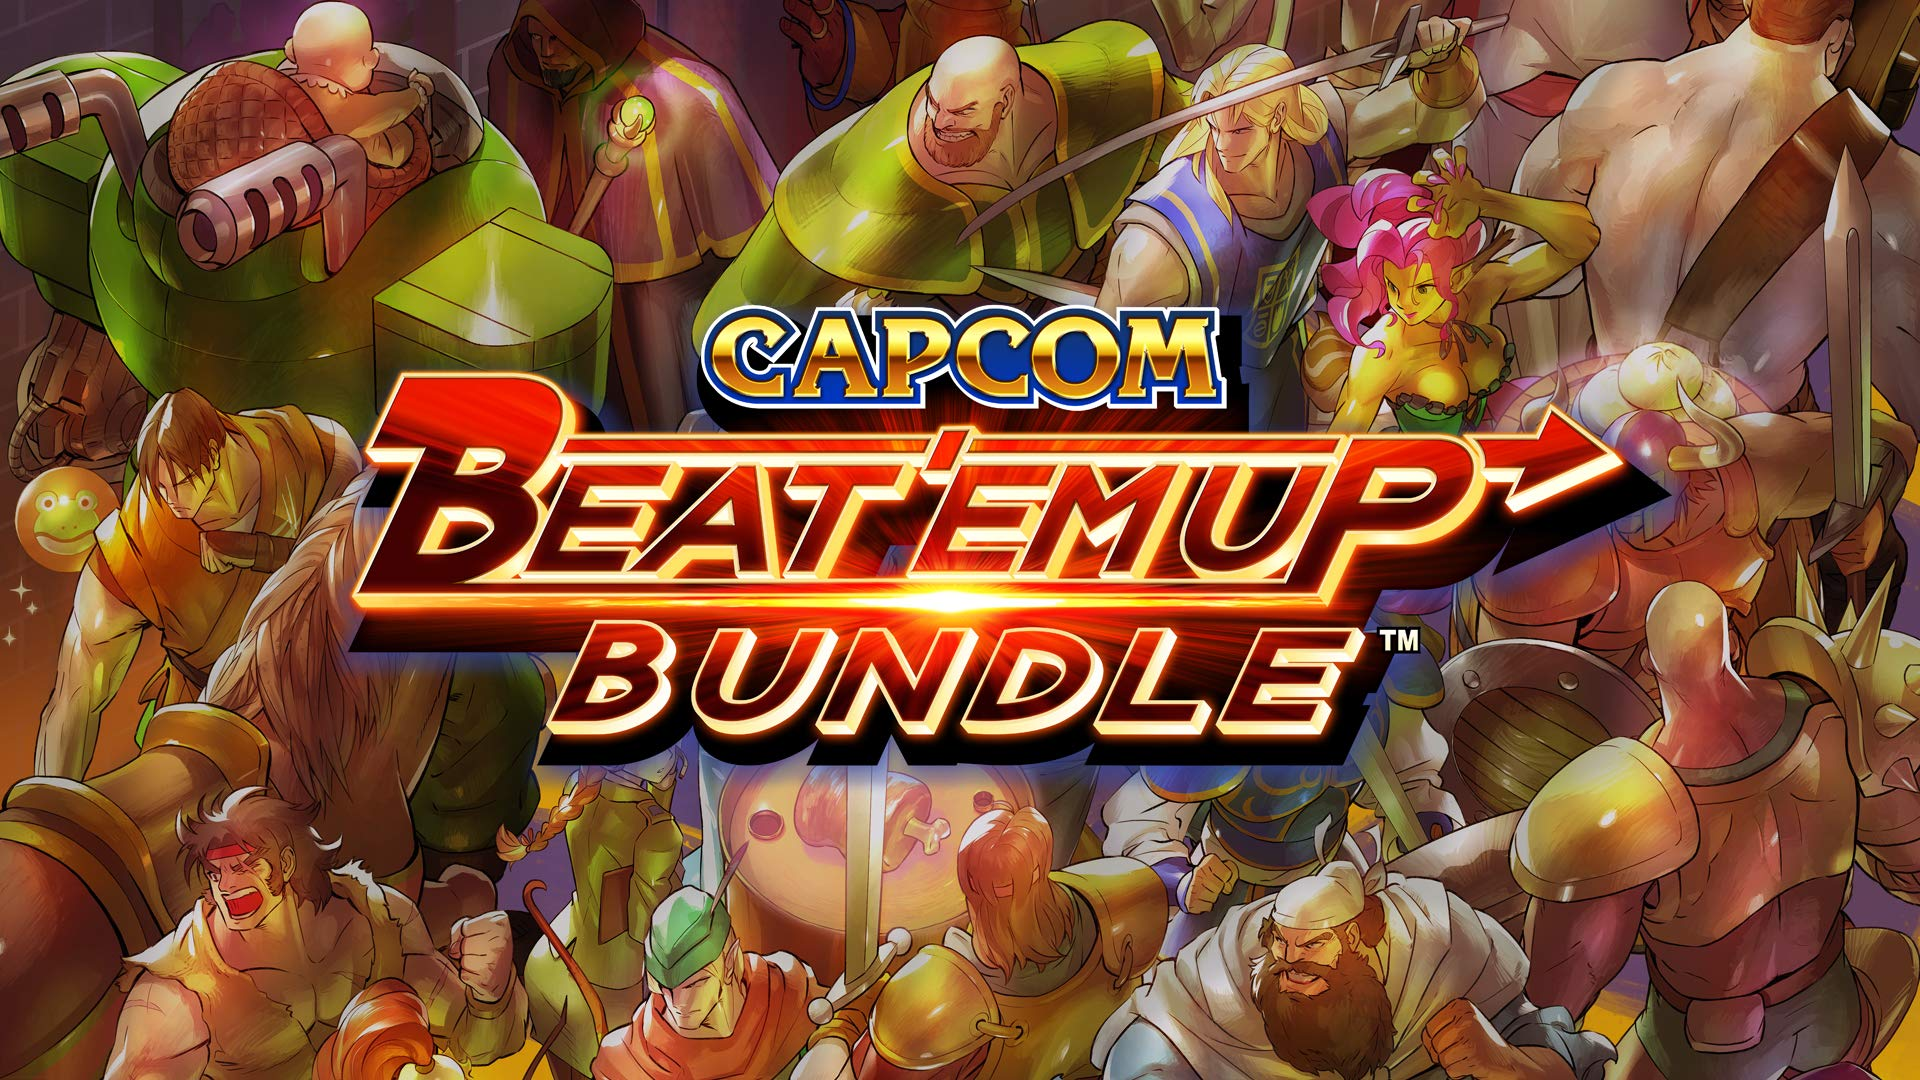 capcom beat em up bundle cover art